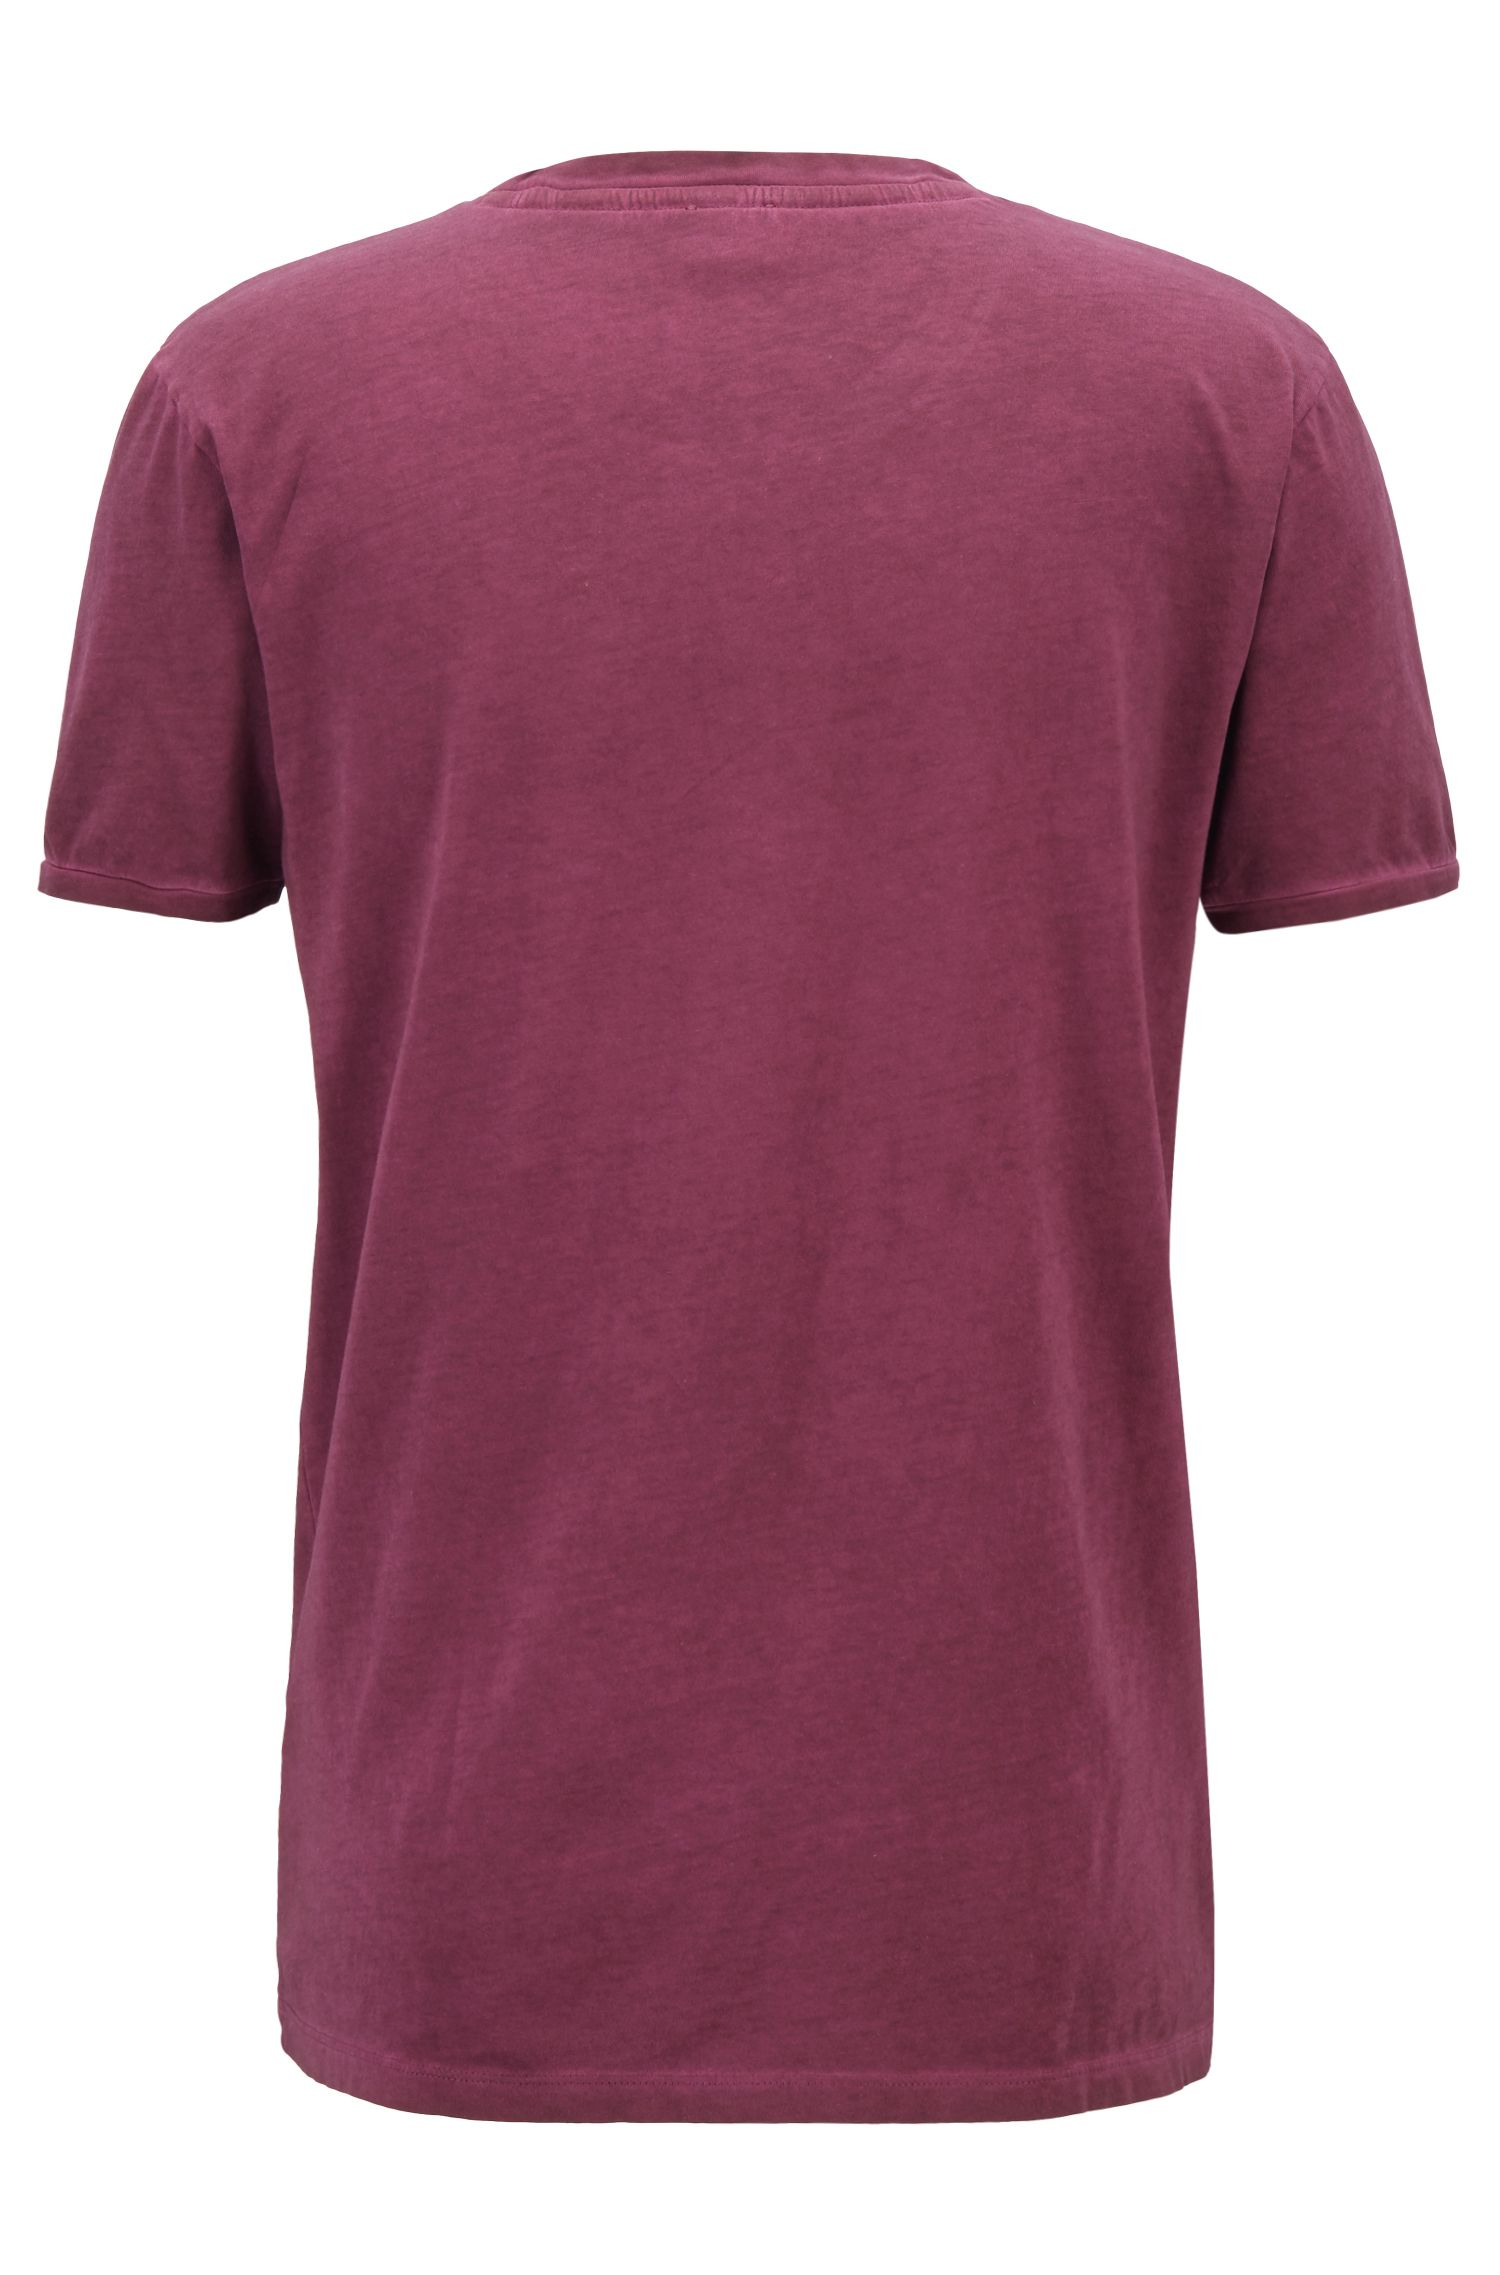 T-shirt regular fit in cotone tinto in capo, Luce viola